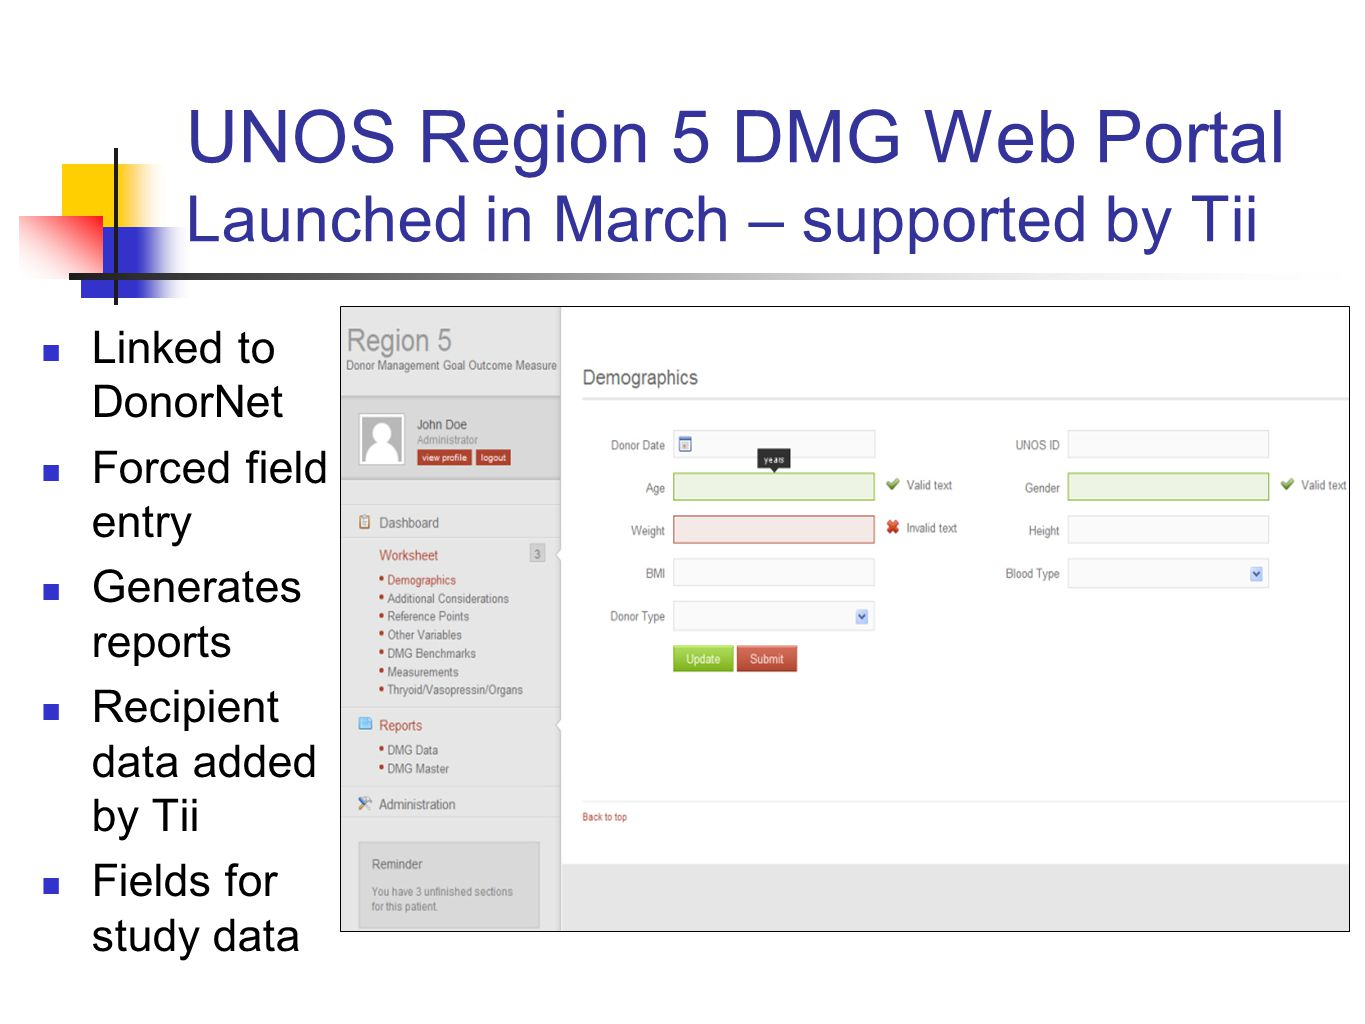 UNOS Region 5 DMG Web Portal Launched in March – supported by Tii